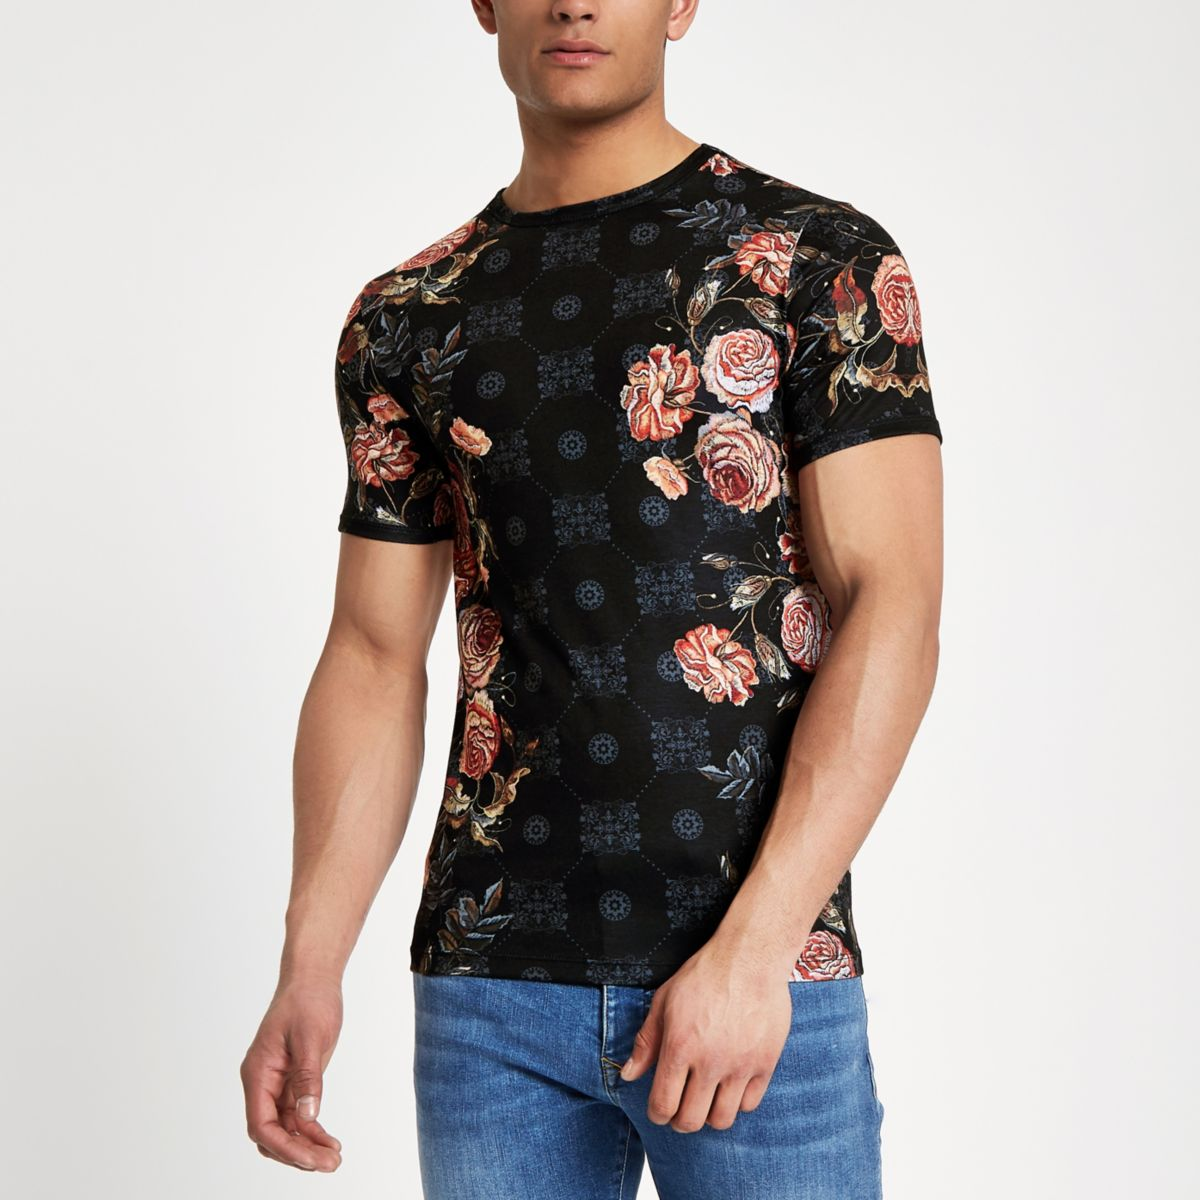 Black rose mix print muscle fit T-shirt